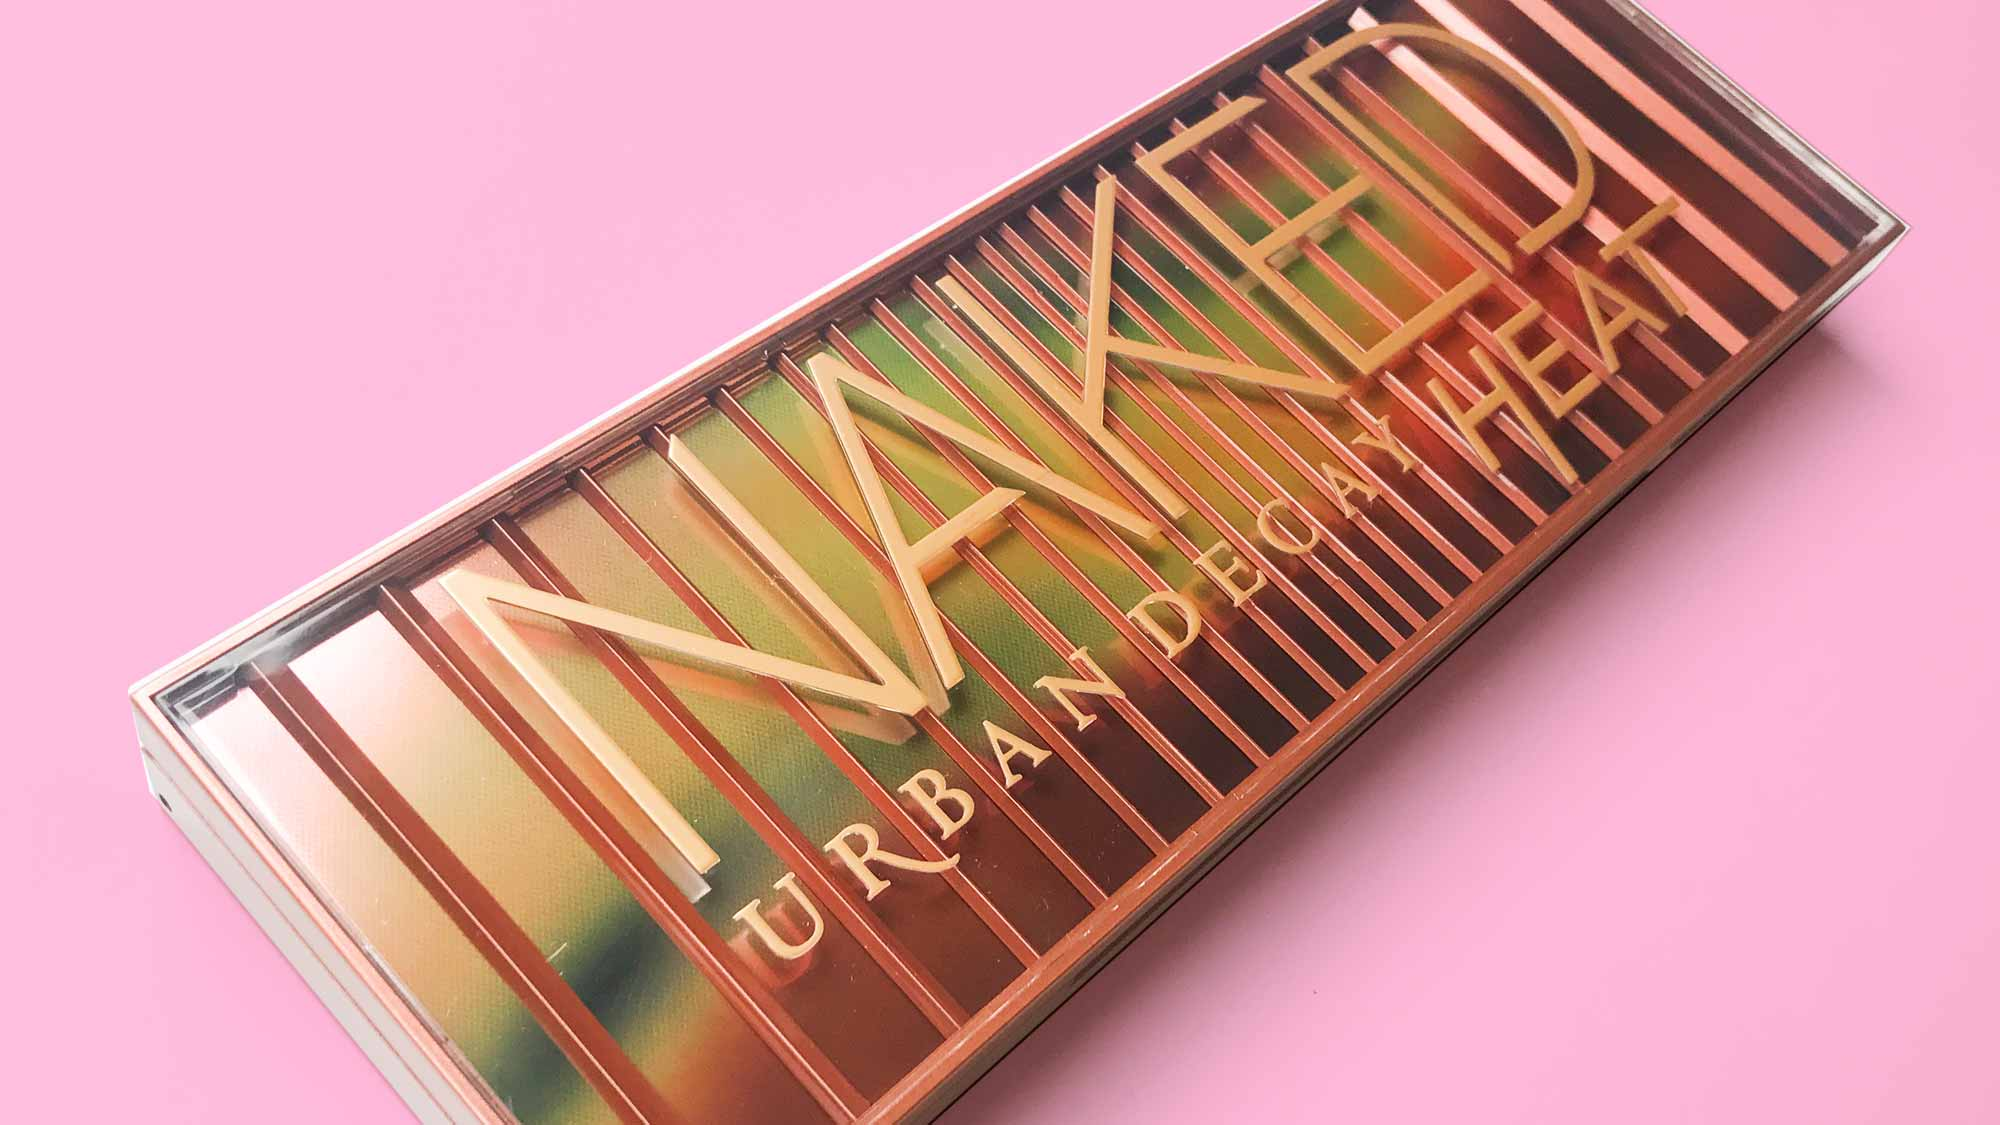 Urban Decay's Naked Heat Palette Is Here And Predicted To Sell Out Fast